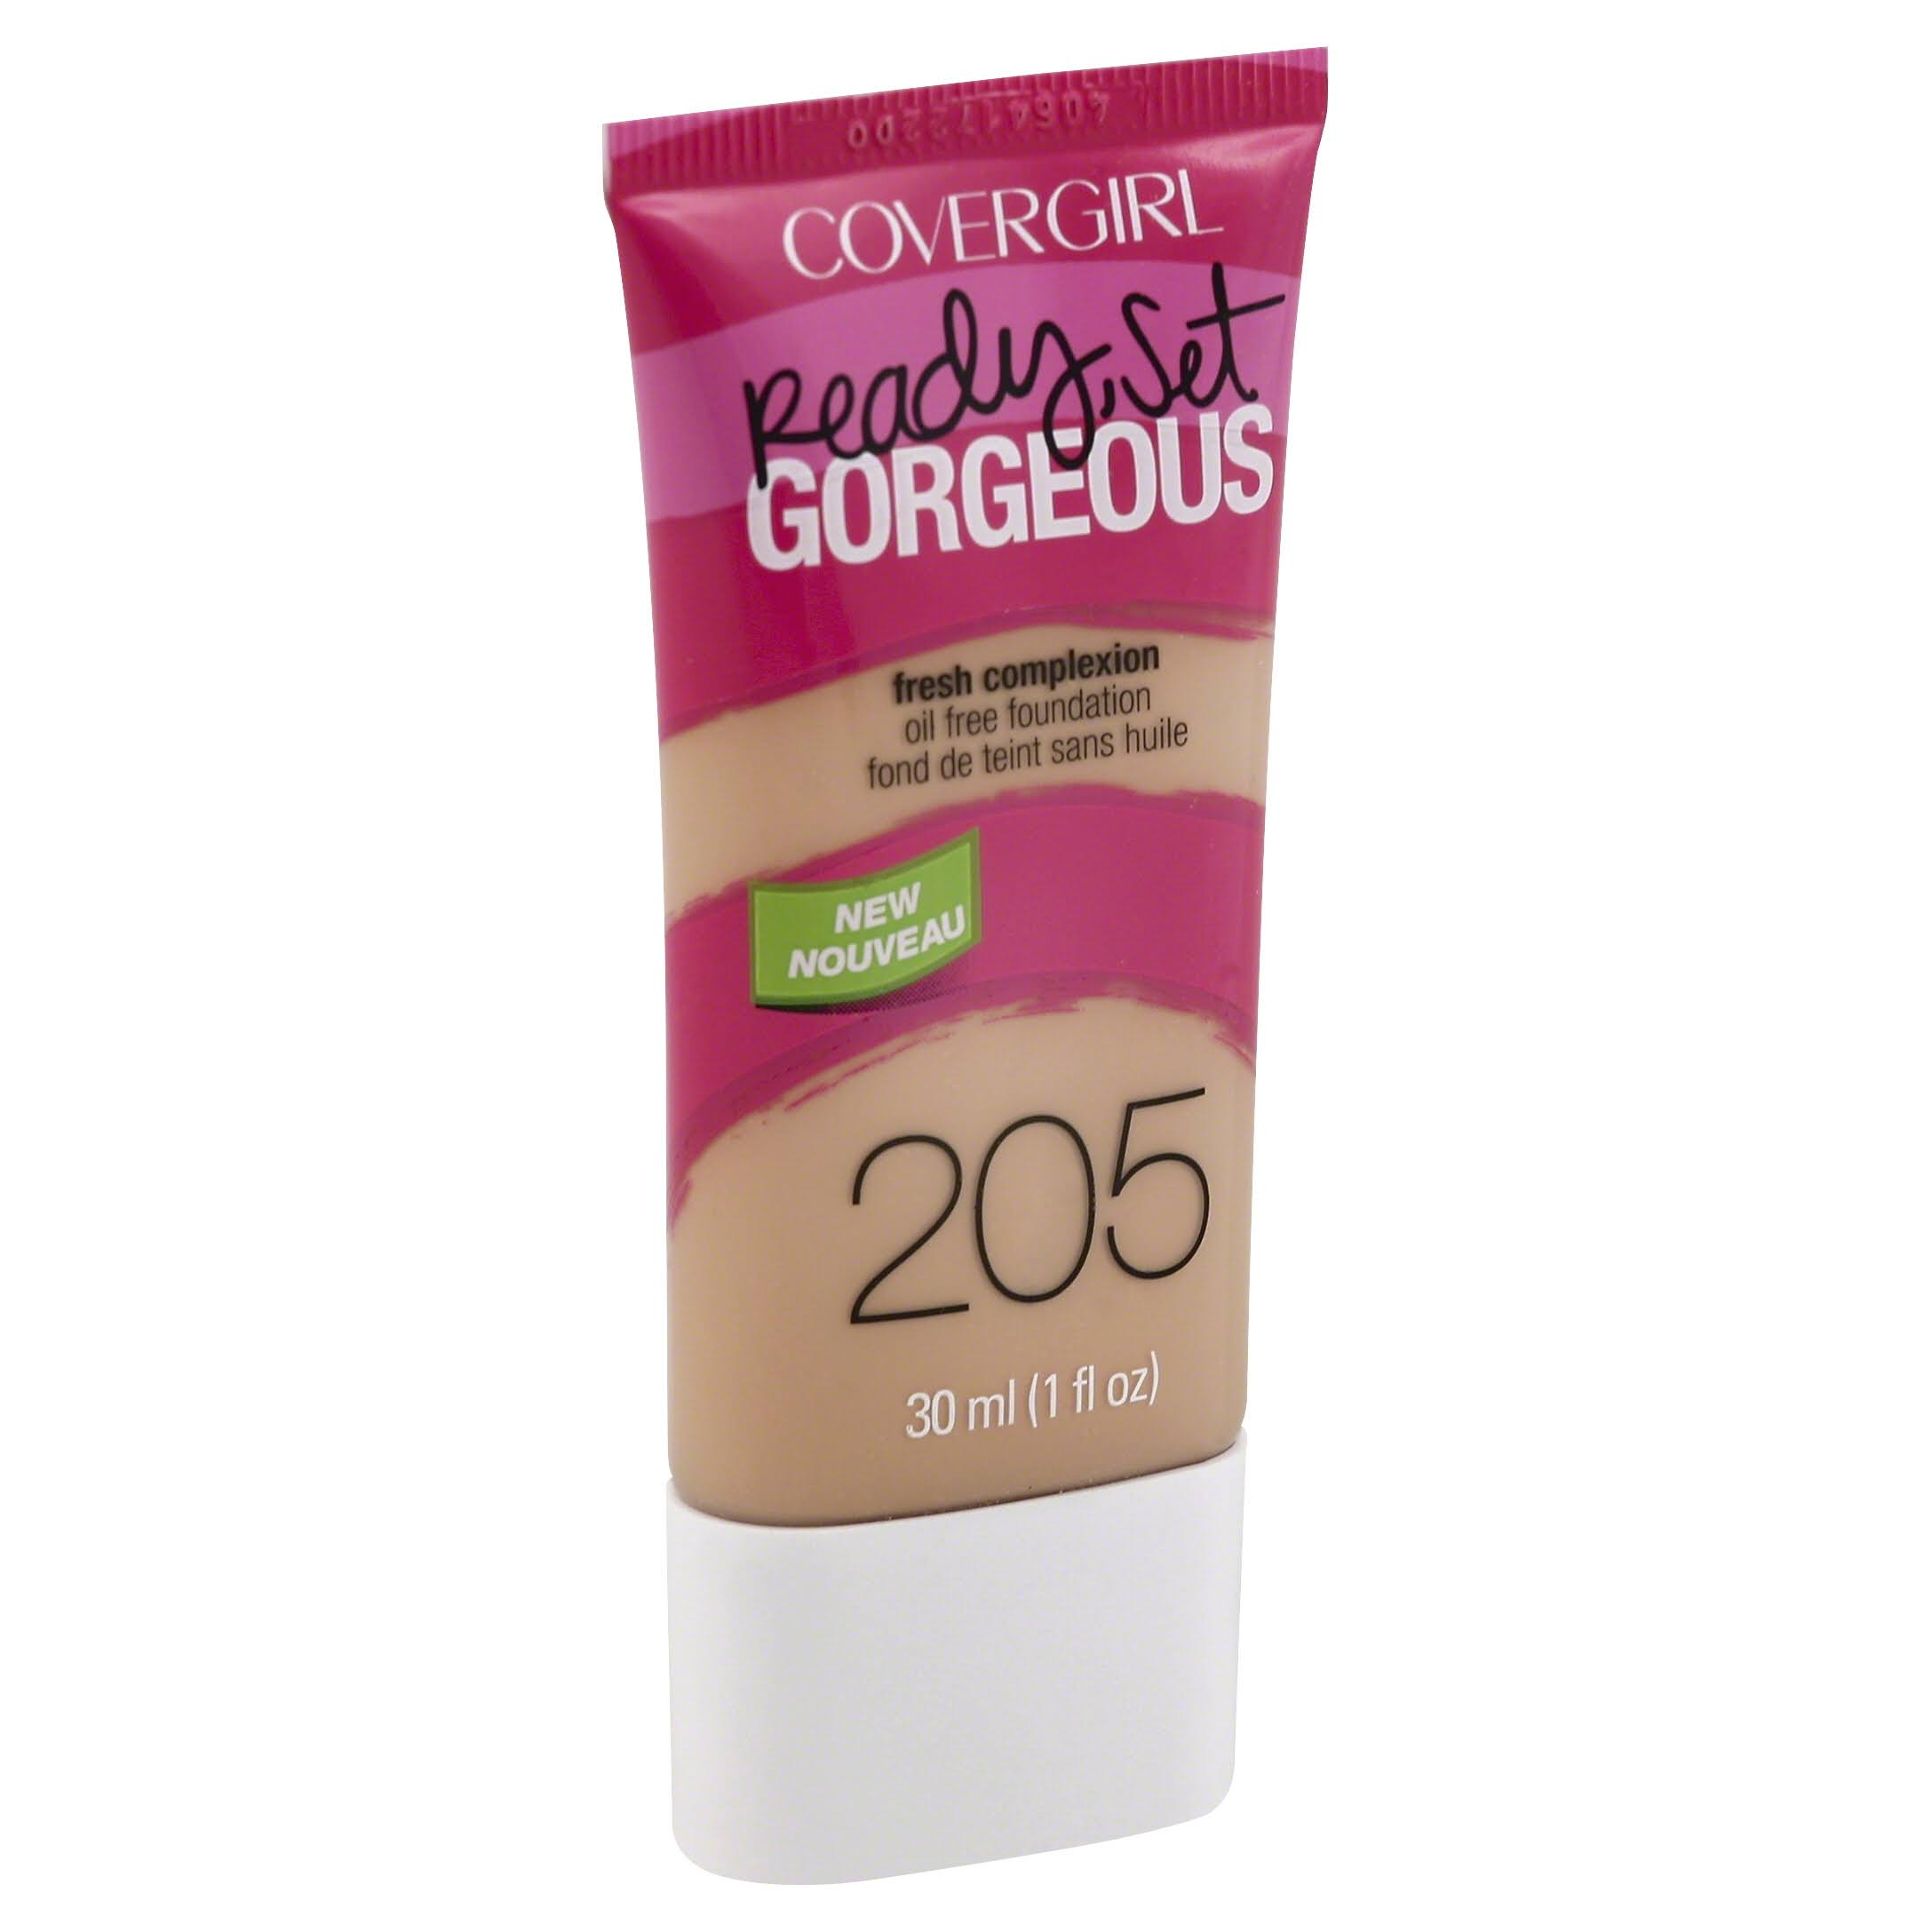 CoverGirl Ready Set Gorgeous Foundation - 205 Natural Beige, 1oz